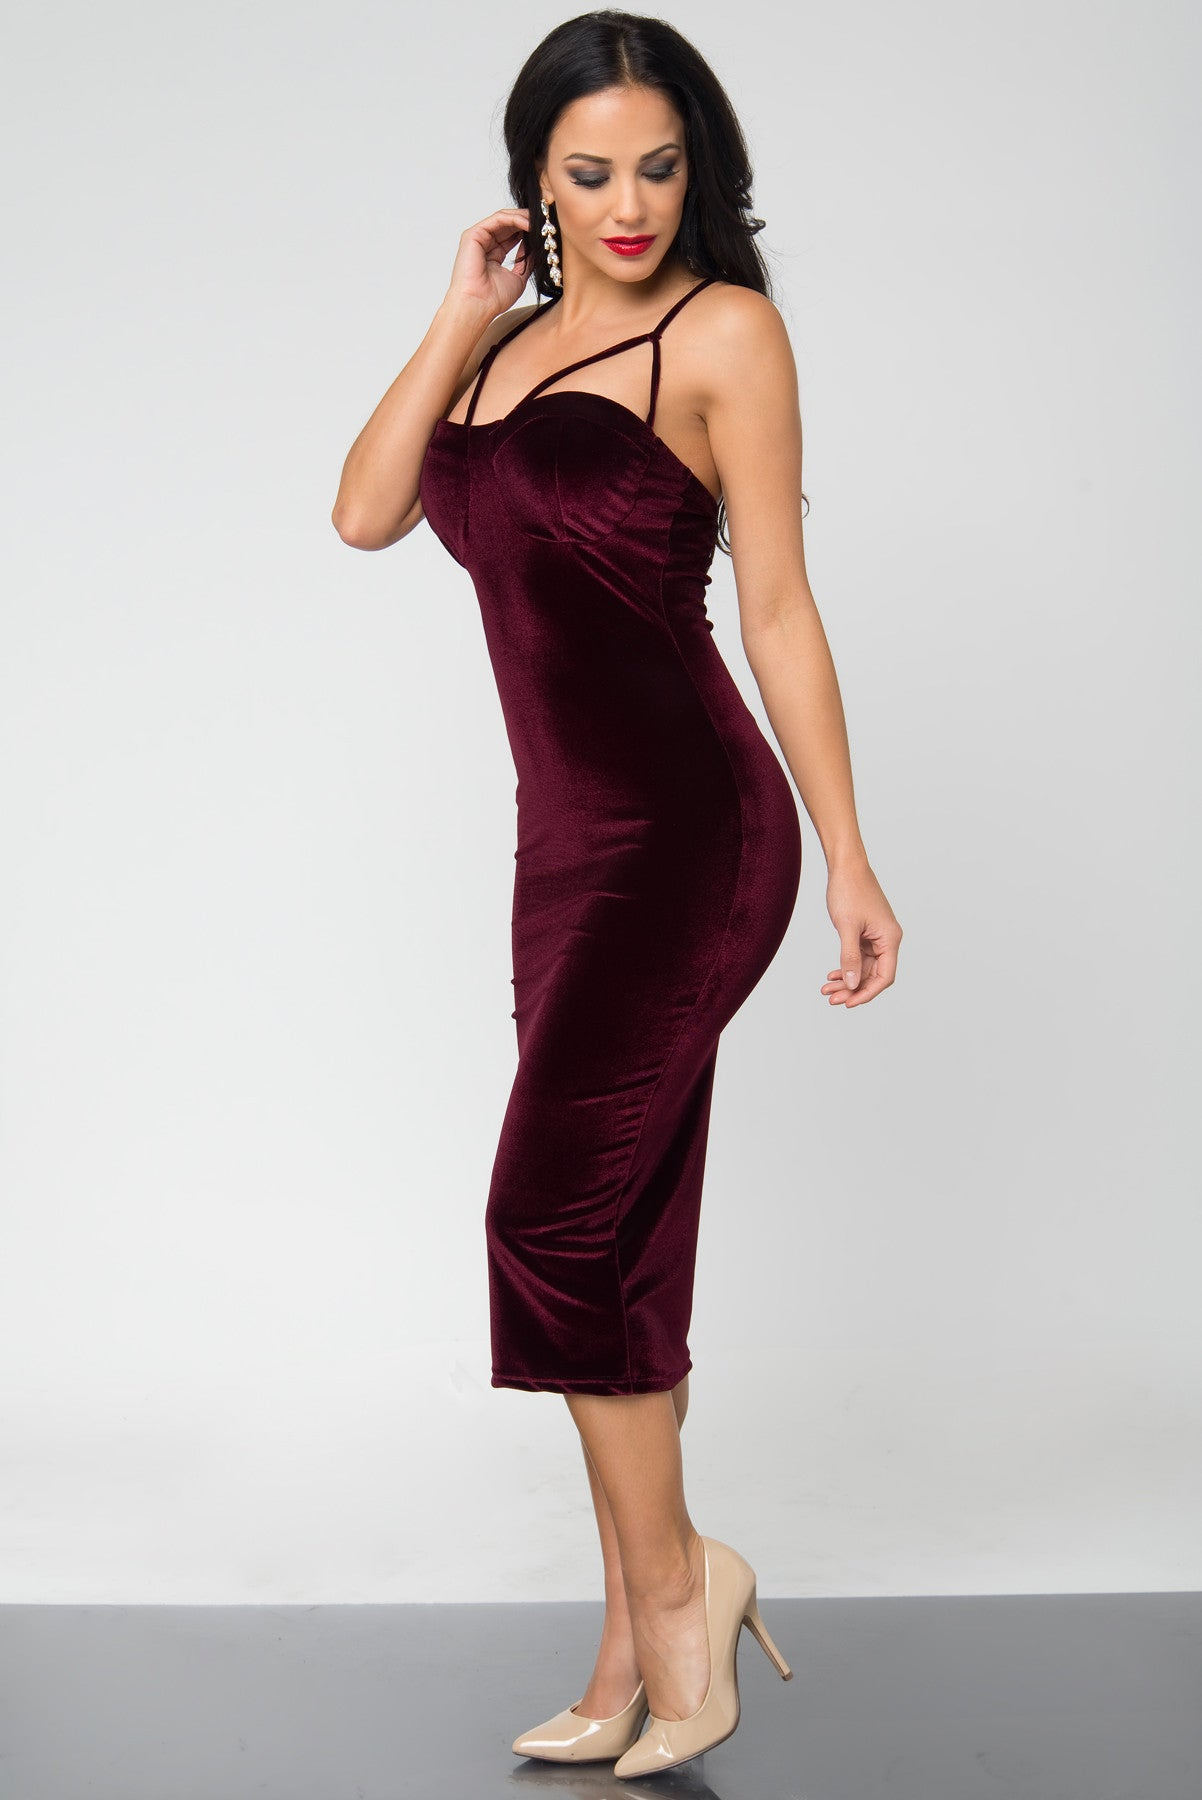 Lenna Burgundy Velvet Dress - Fashion Effect Store  - 3